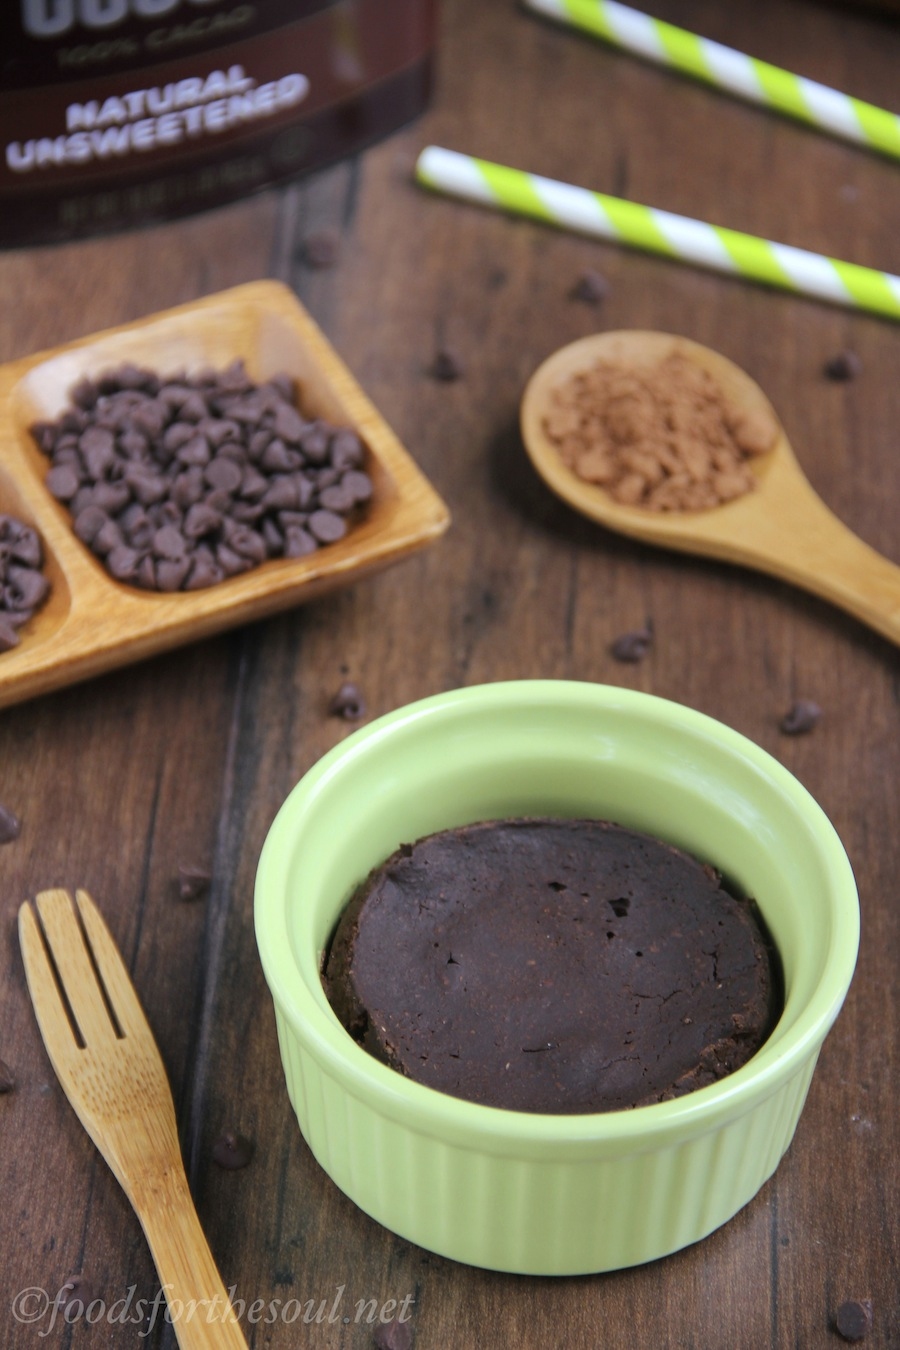 A rich, fudgy brownie you can make in under 10 minutes! It's the perfect skinny & clean-eating treat!